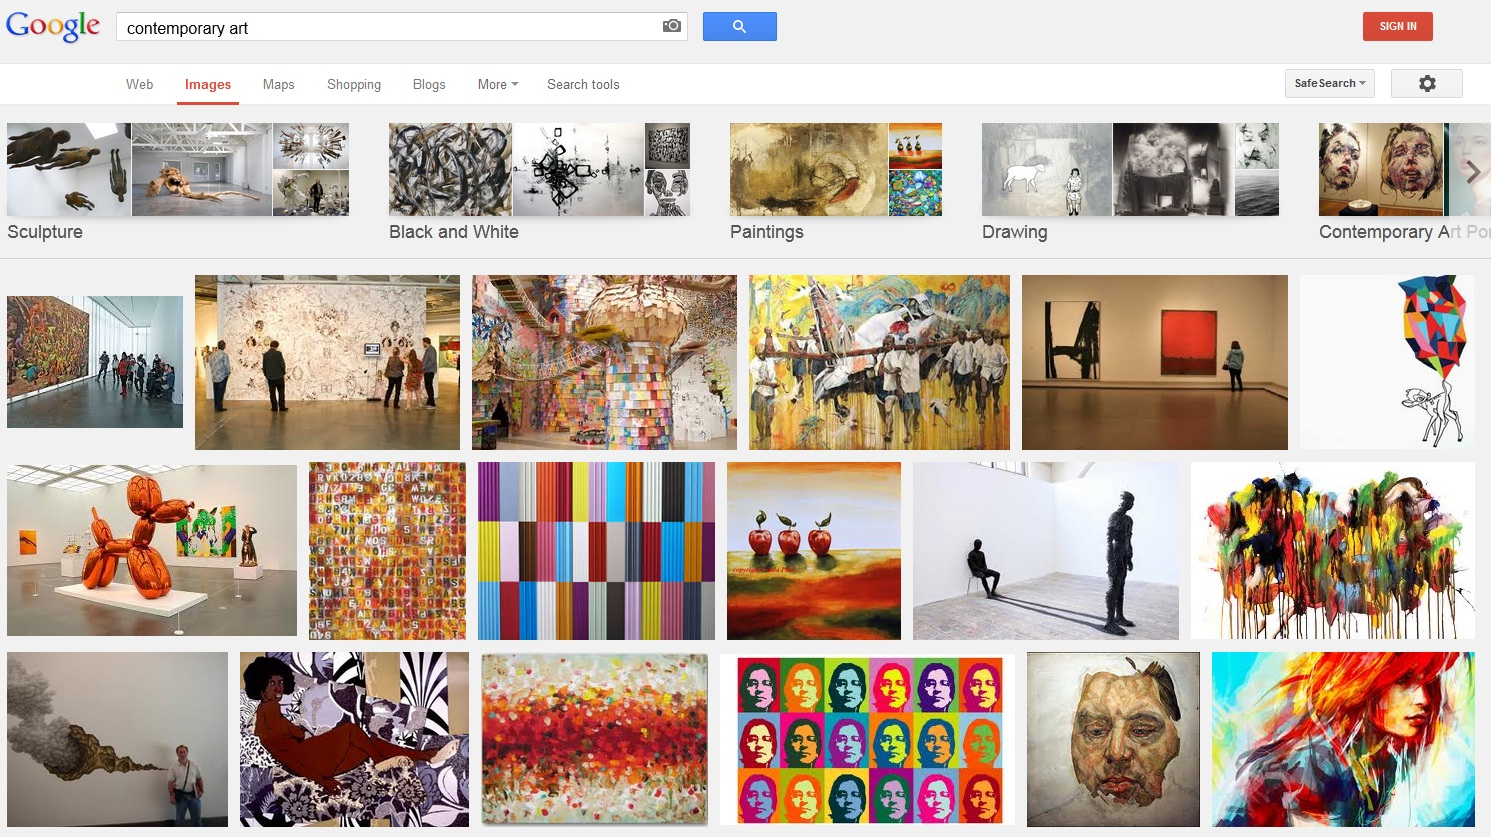 Picture of results from a Google Image search for Contemporary Art